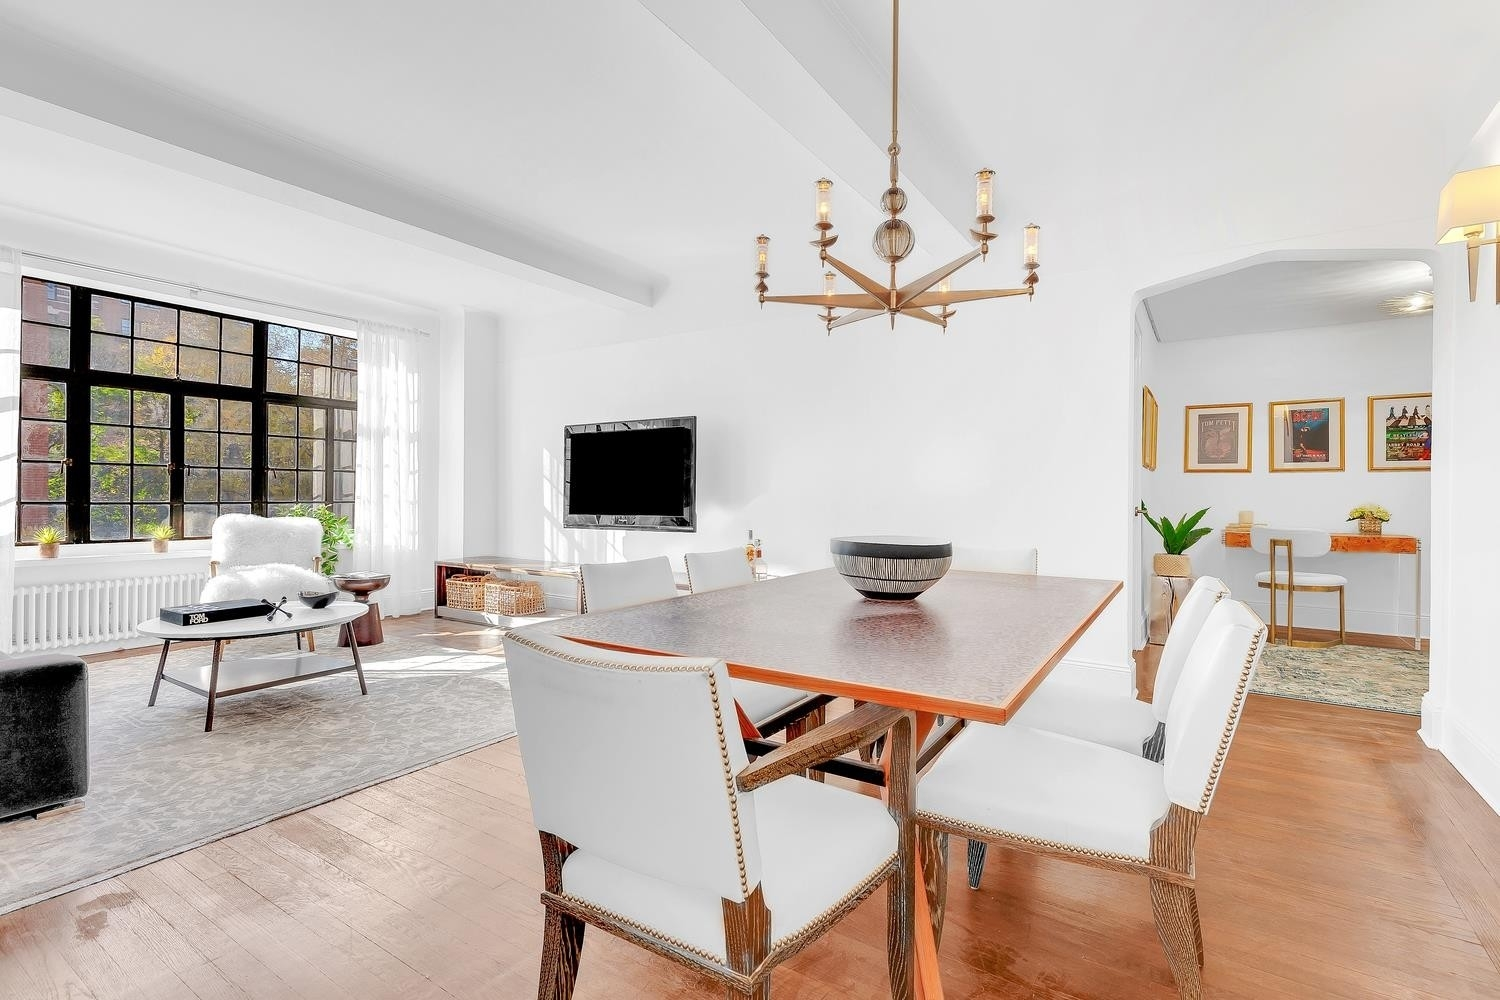 2. Co-op Properties for Sale at GRAMERCY OWNERS LTD, 44 GRAMERCY PARK N, 4C Gramercy Park, New York, NY 10010